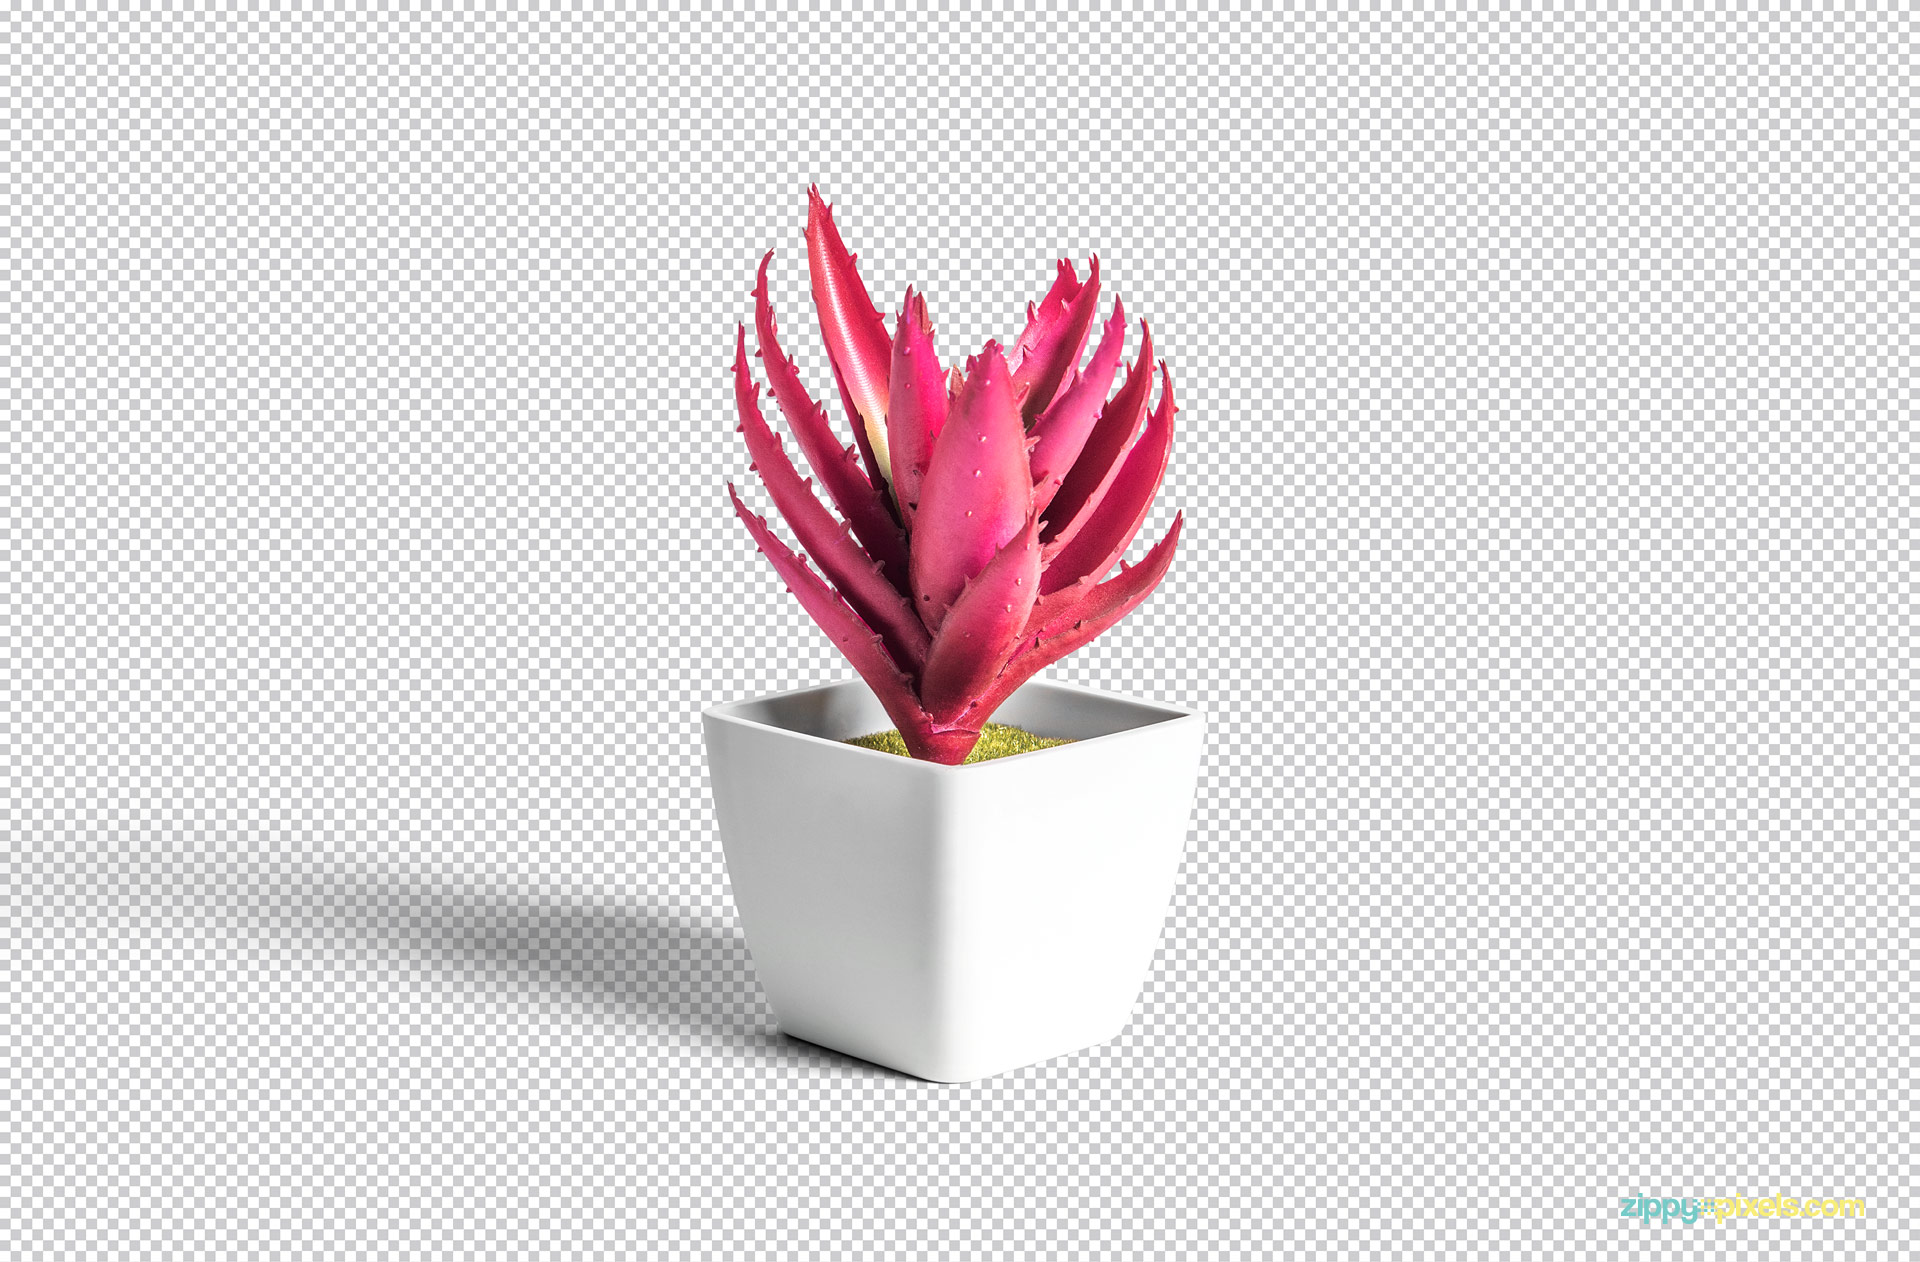 Use Adobe Photoshop for the editing of the plant pot PSD.